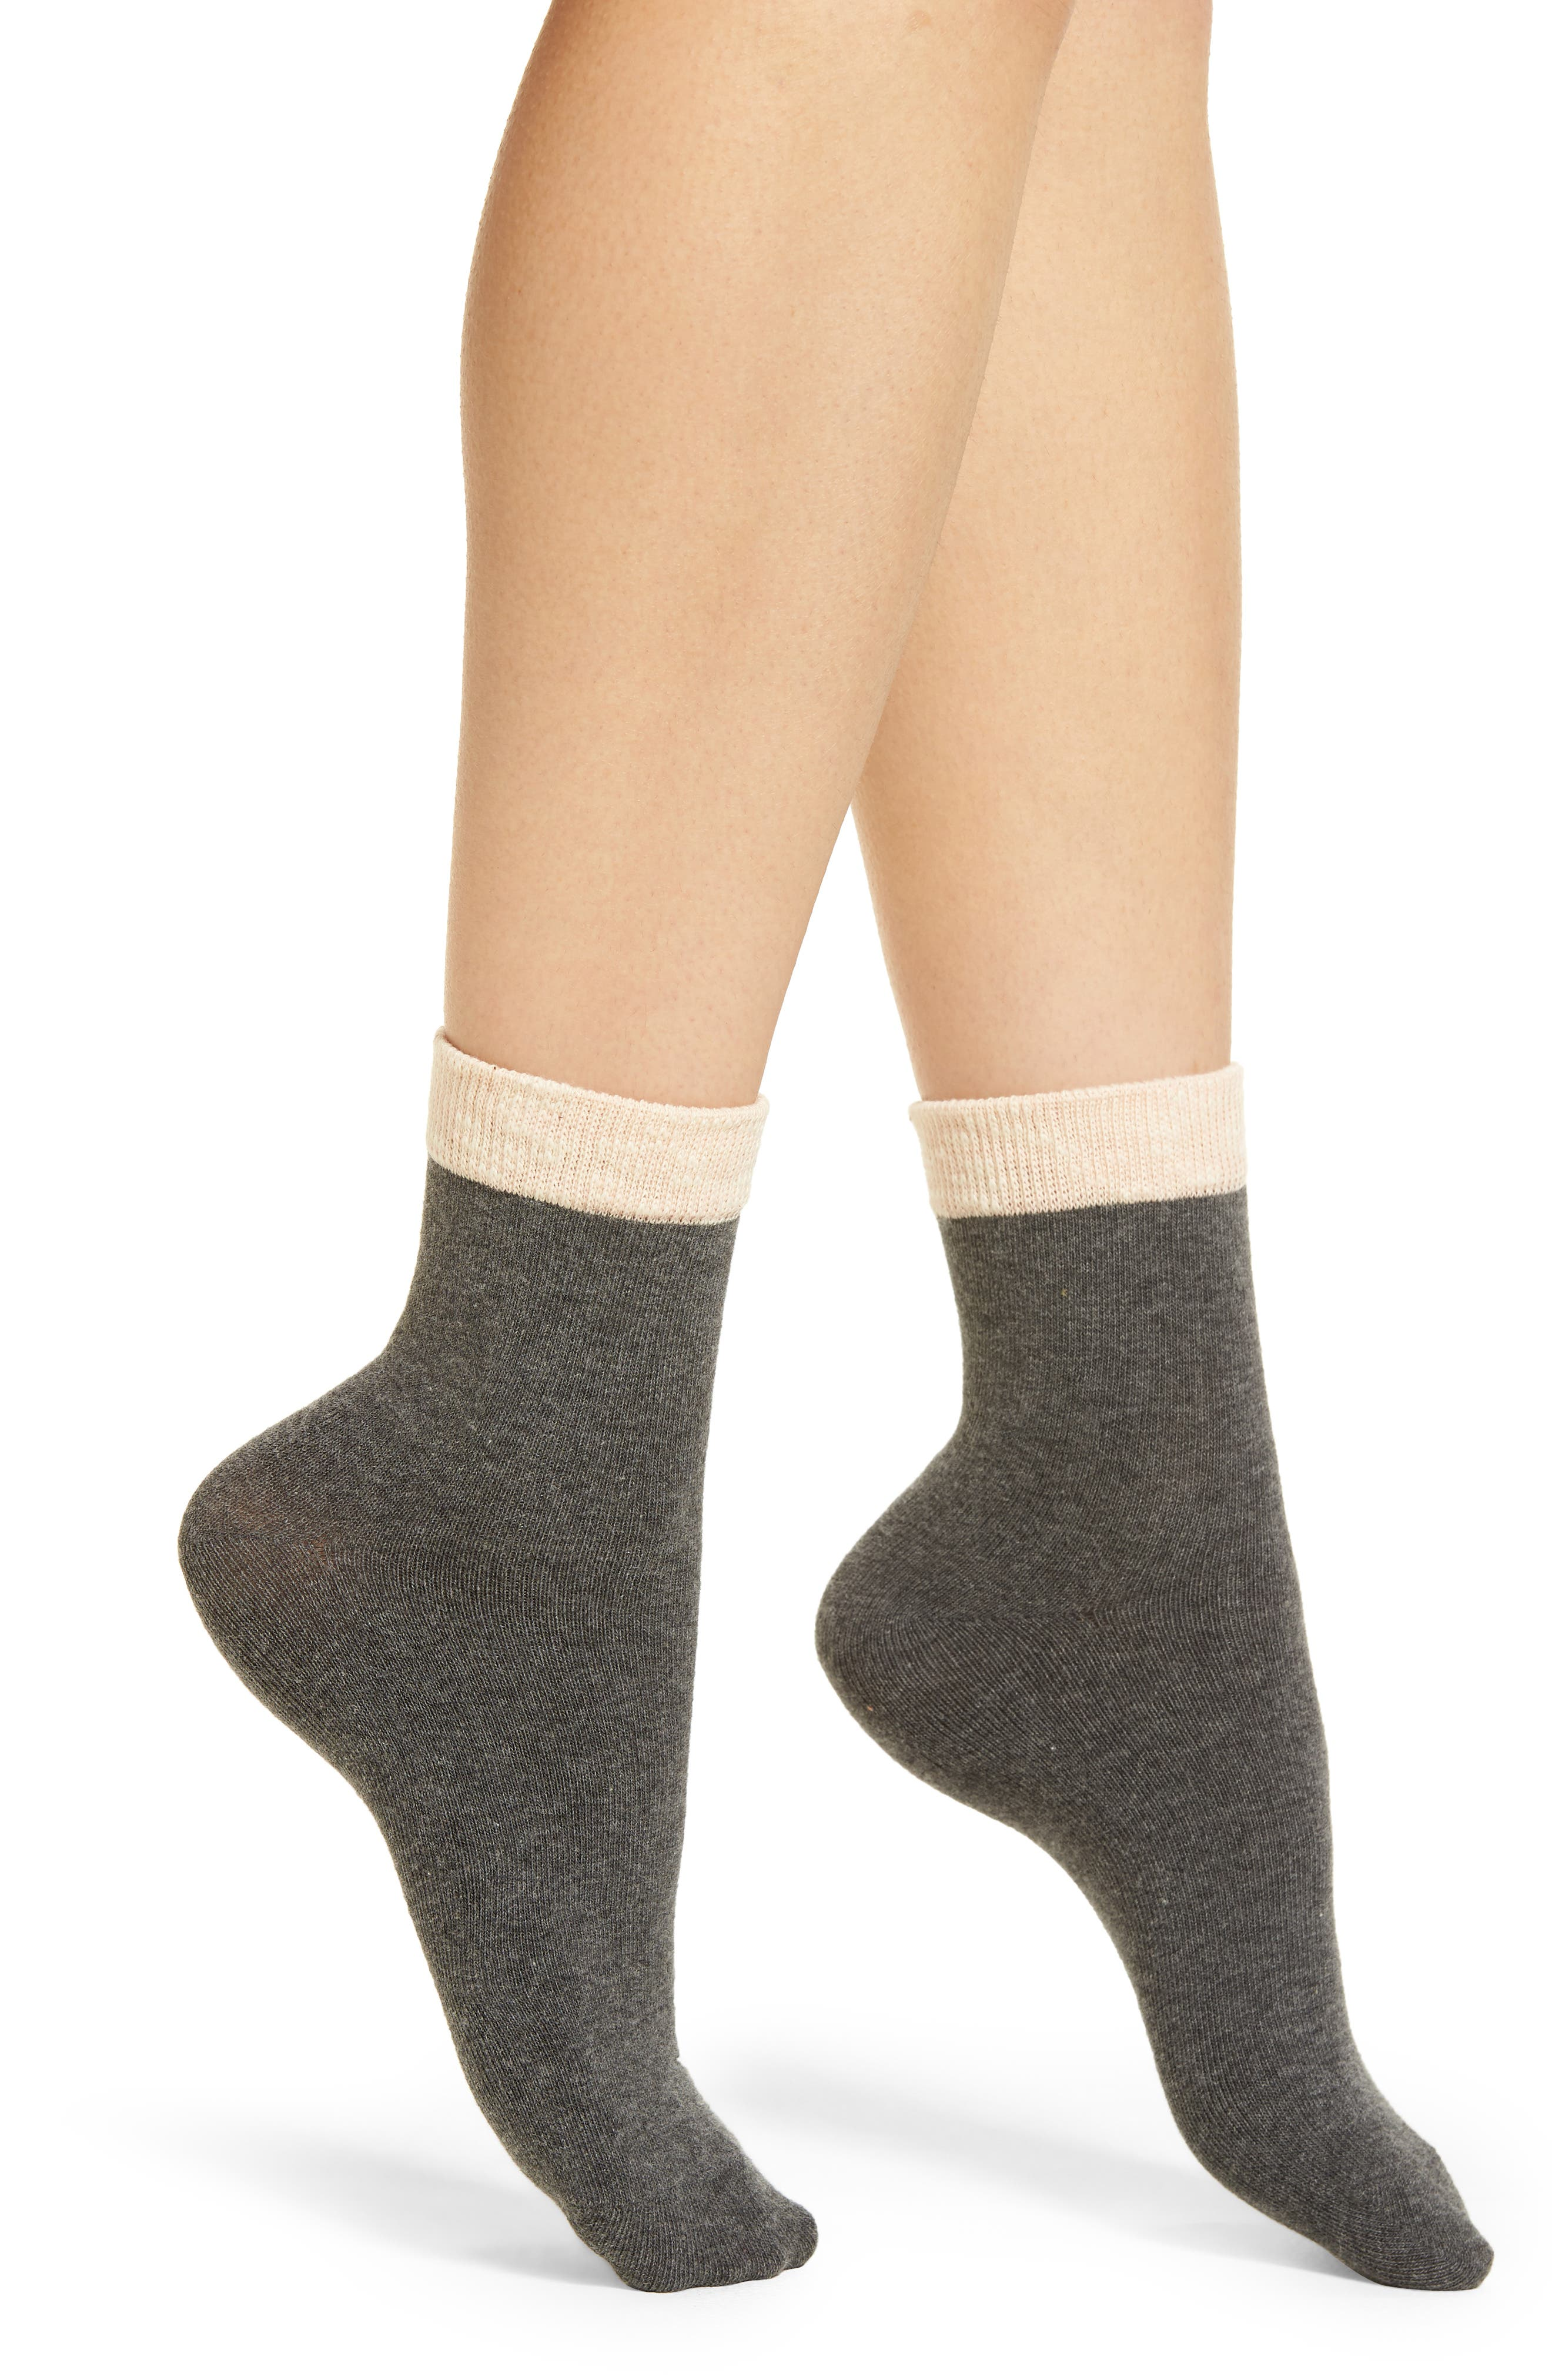 Ivy Ankle Socks,                             Main thumbnail 1, color,                             010